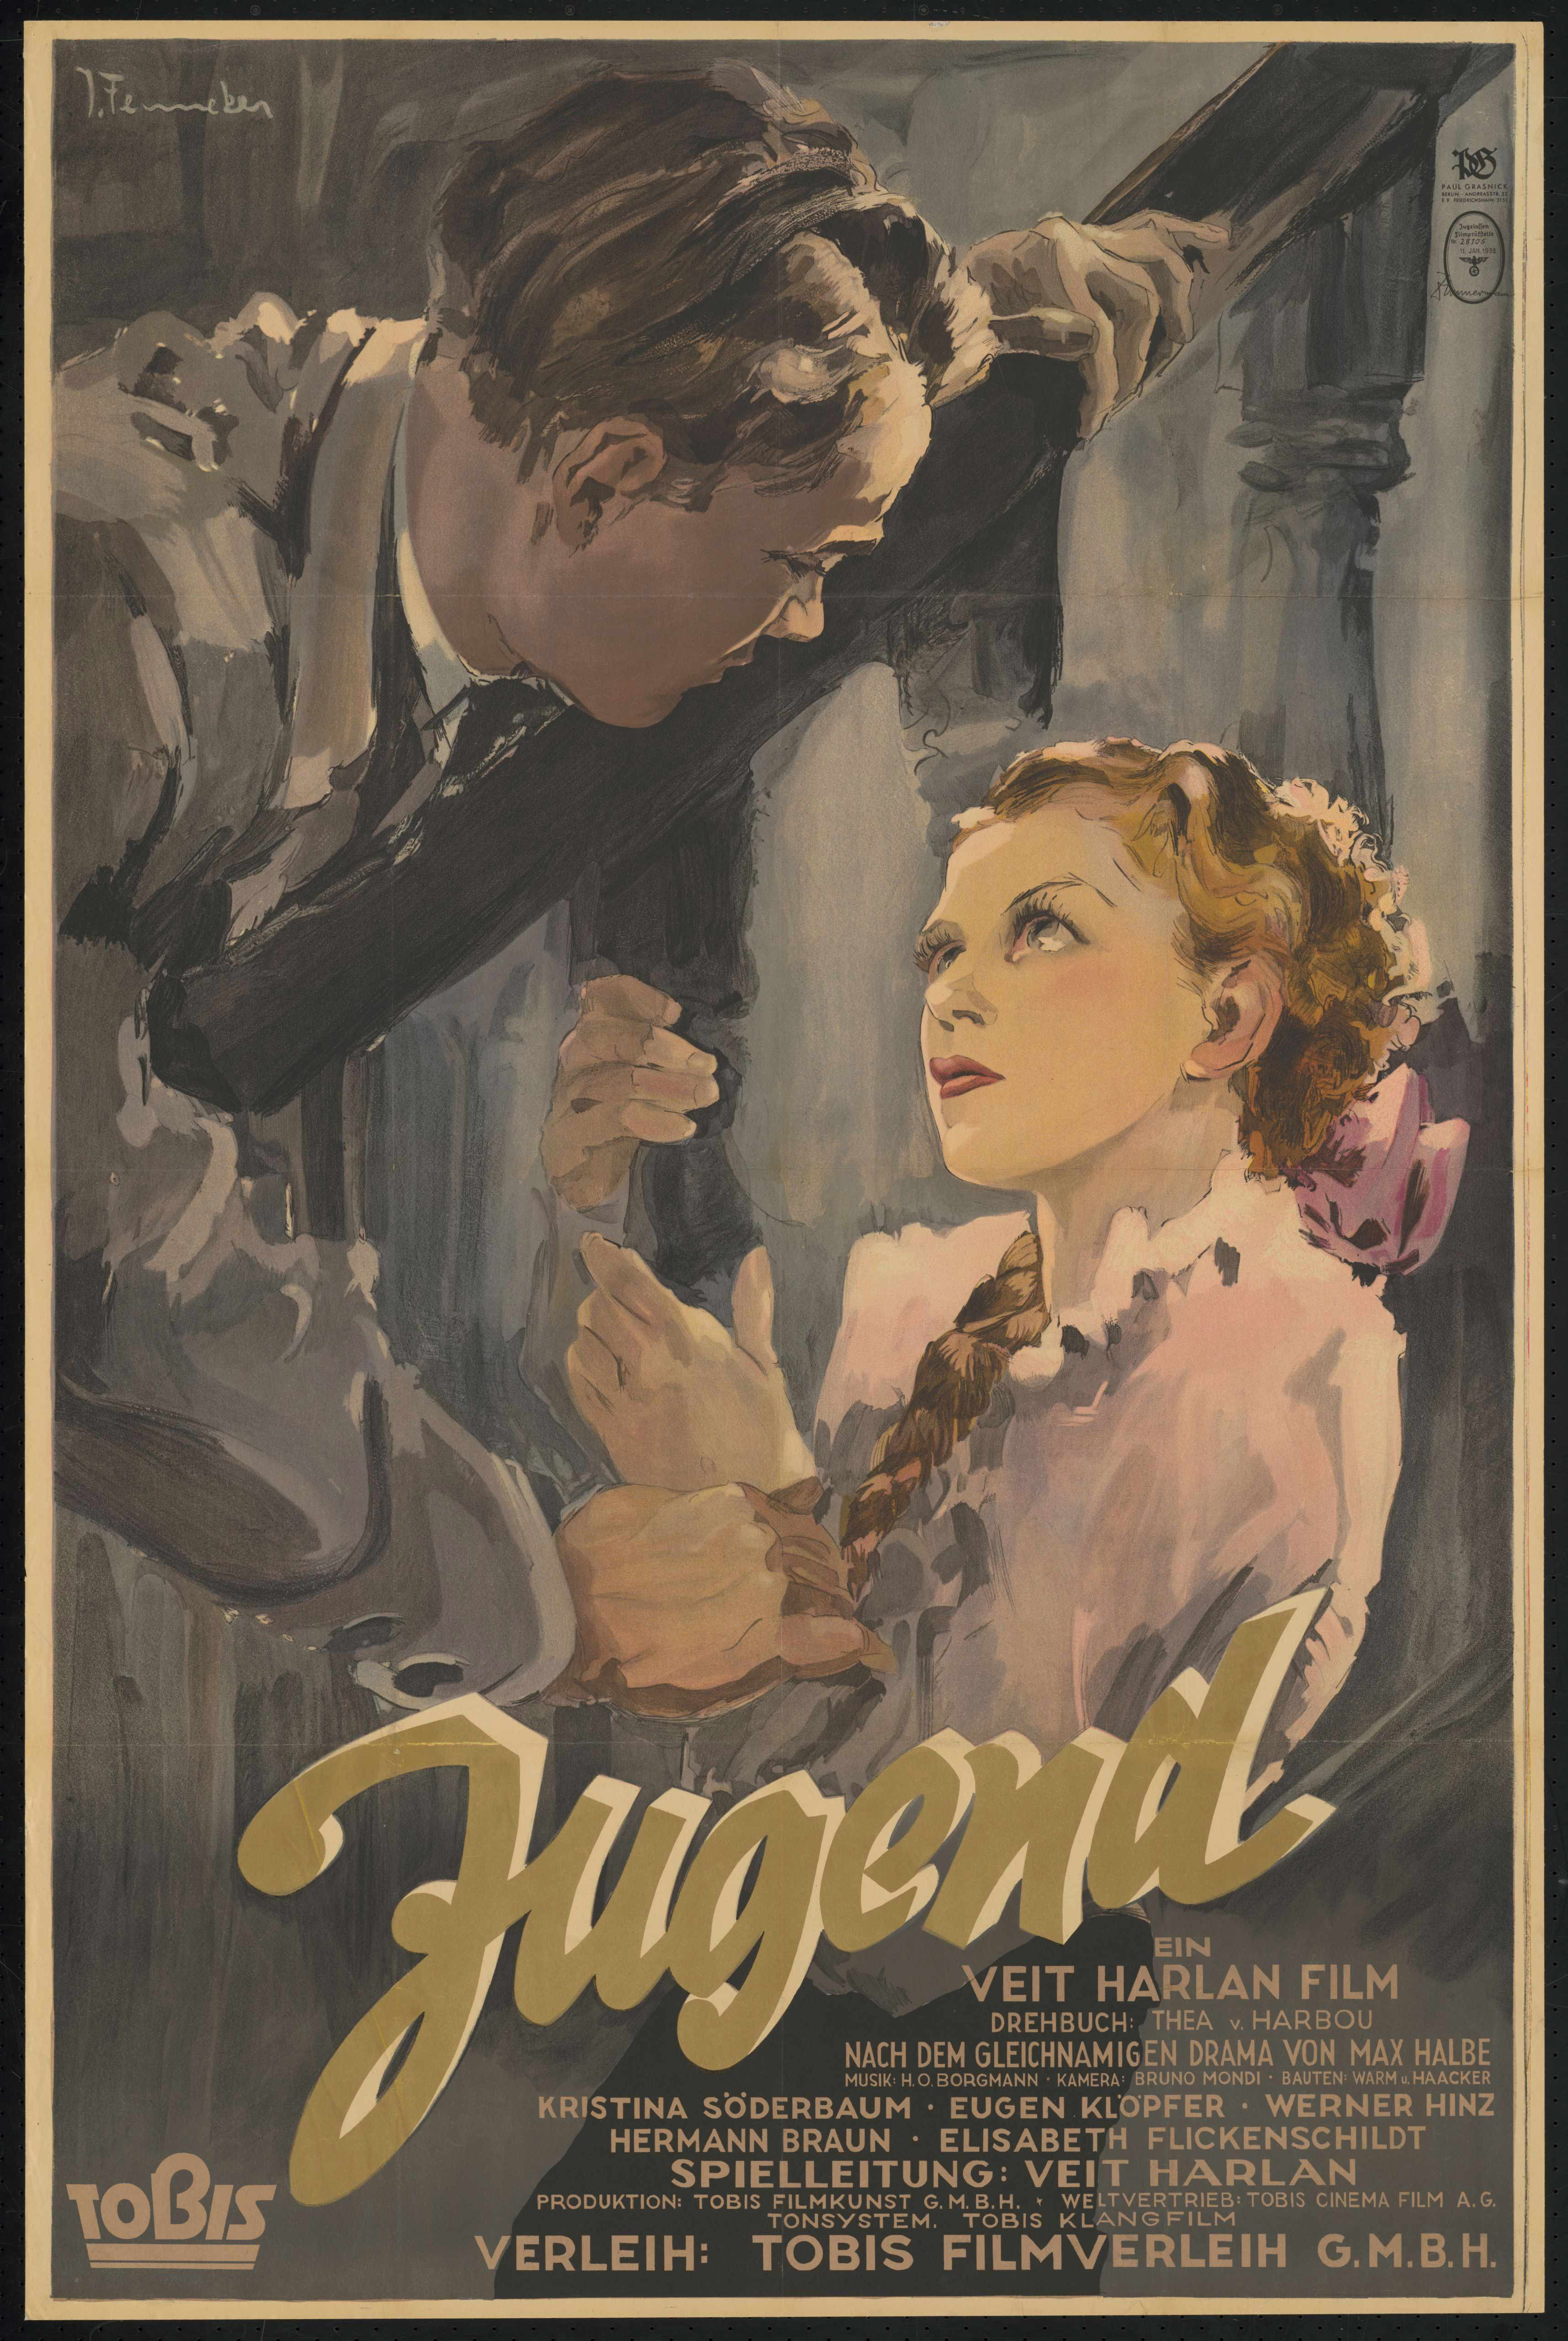 Film poster by Josef Fenneker: Jugend, Germany 1937, directed by Veit Harlan